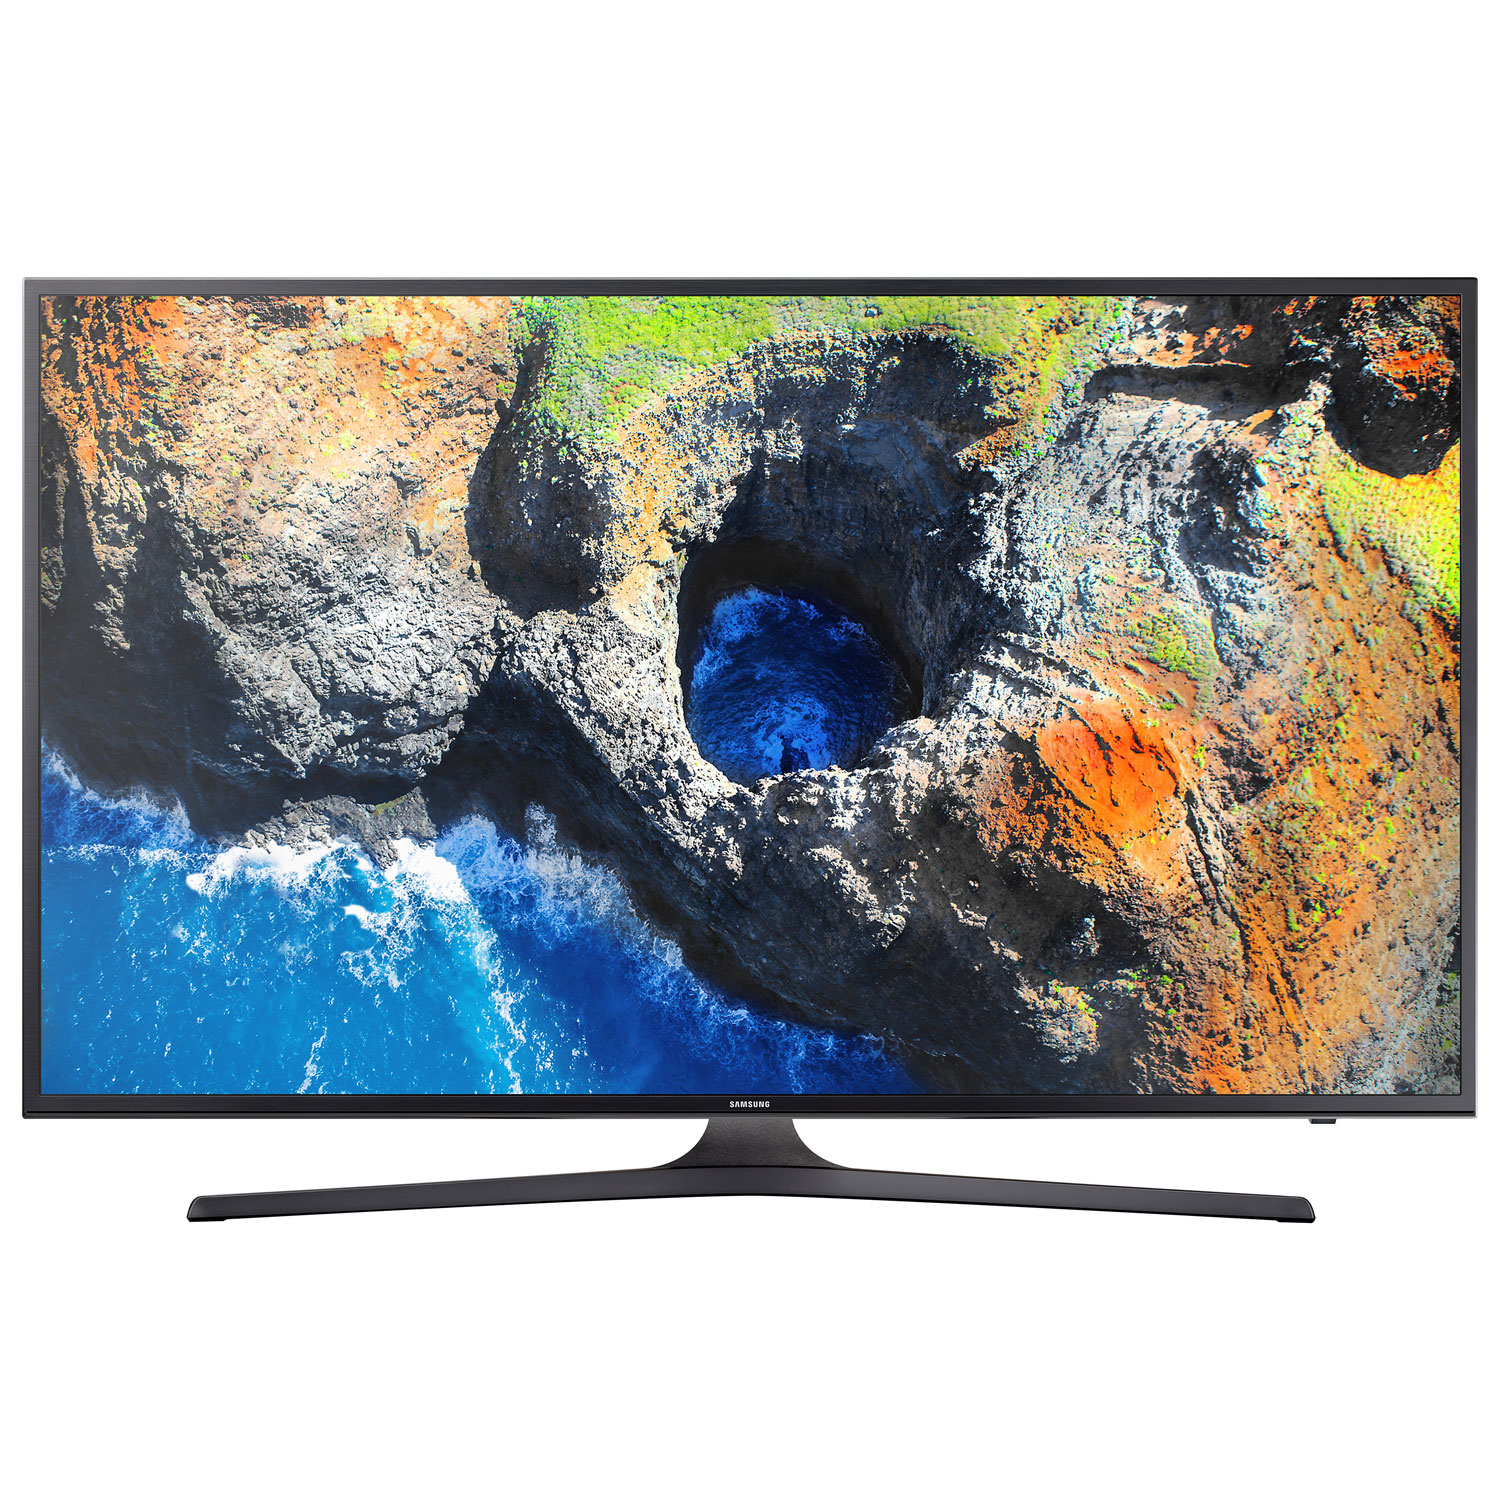 sony tv 40 inch 4k. samsung 40\ sony tv 40 inch 4k